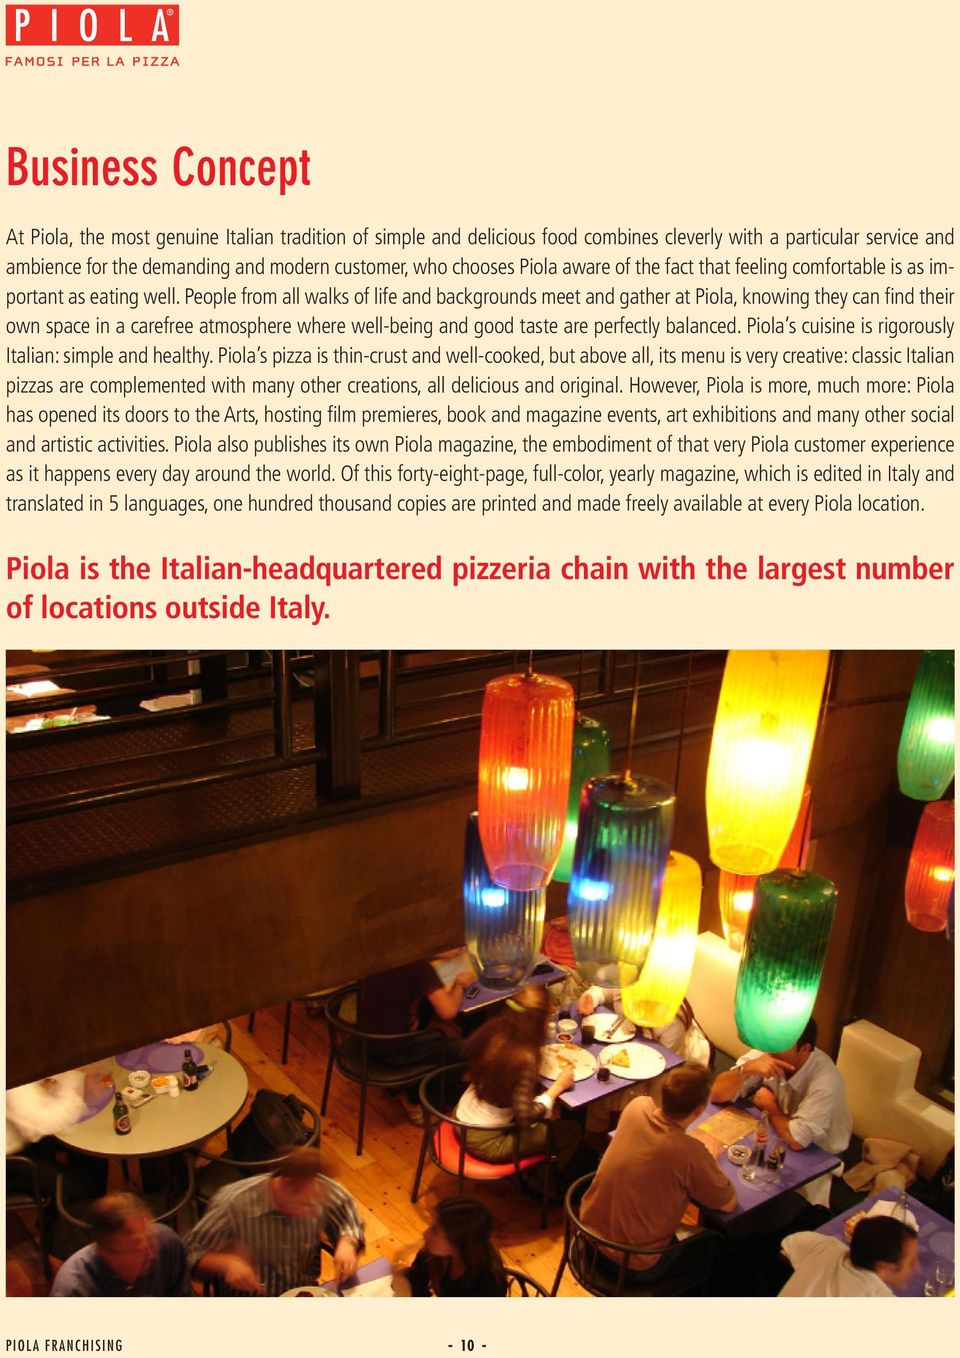 People from all walks of life and backgrounds meet and gather at Piola, knowing they can find their own space in a carefree atmosphere where well-being and good taste are perfectly balanced.